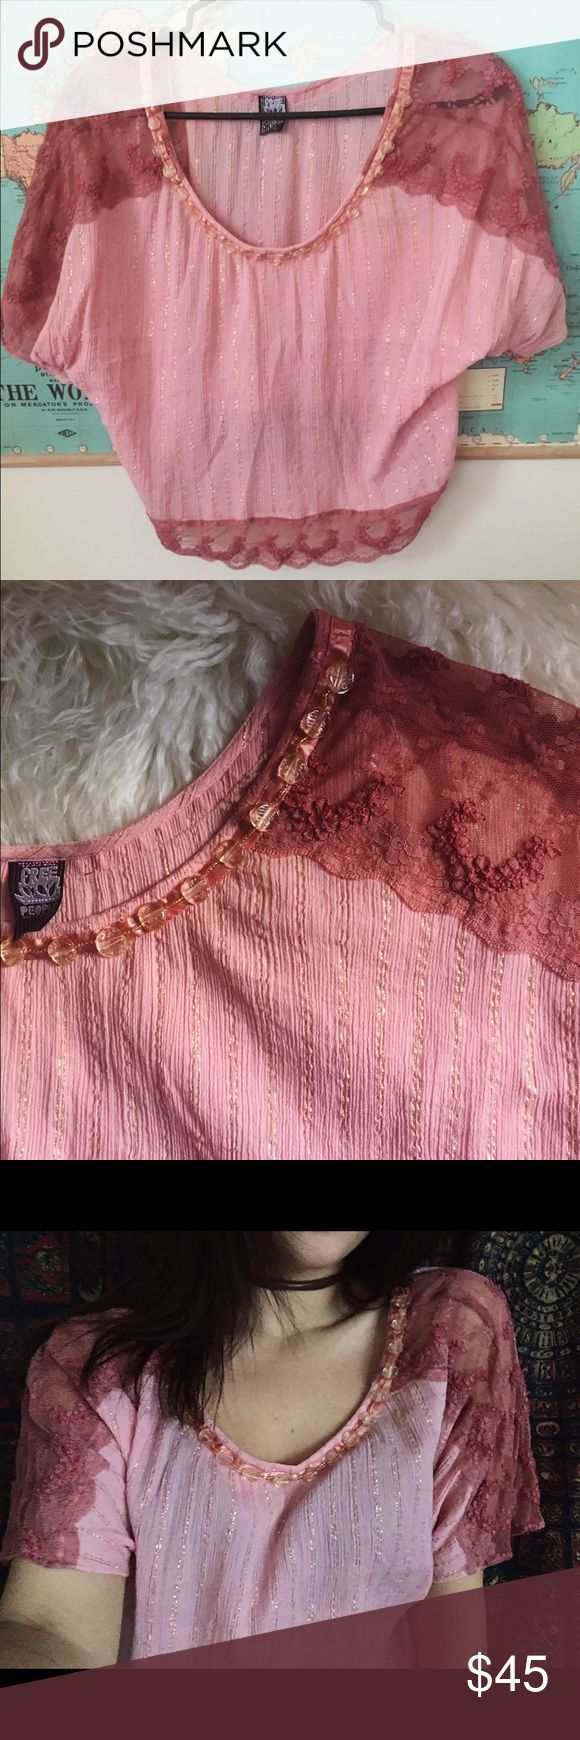 Free people Free people pink slouchy top with beaded neckline, metallic gold accents, and delicate lace details on sleeves. Only worn two or three times Free People Tops